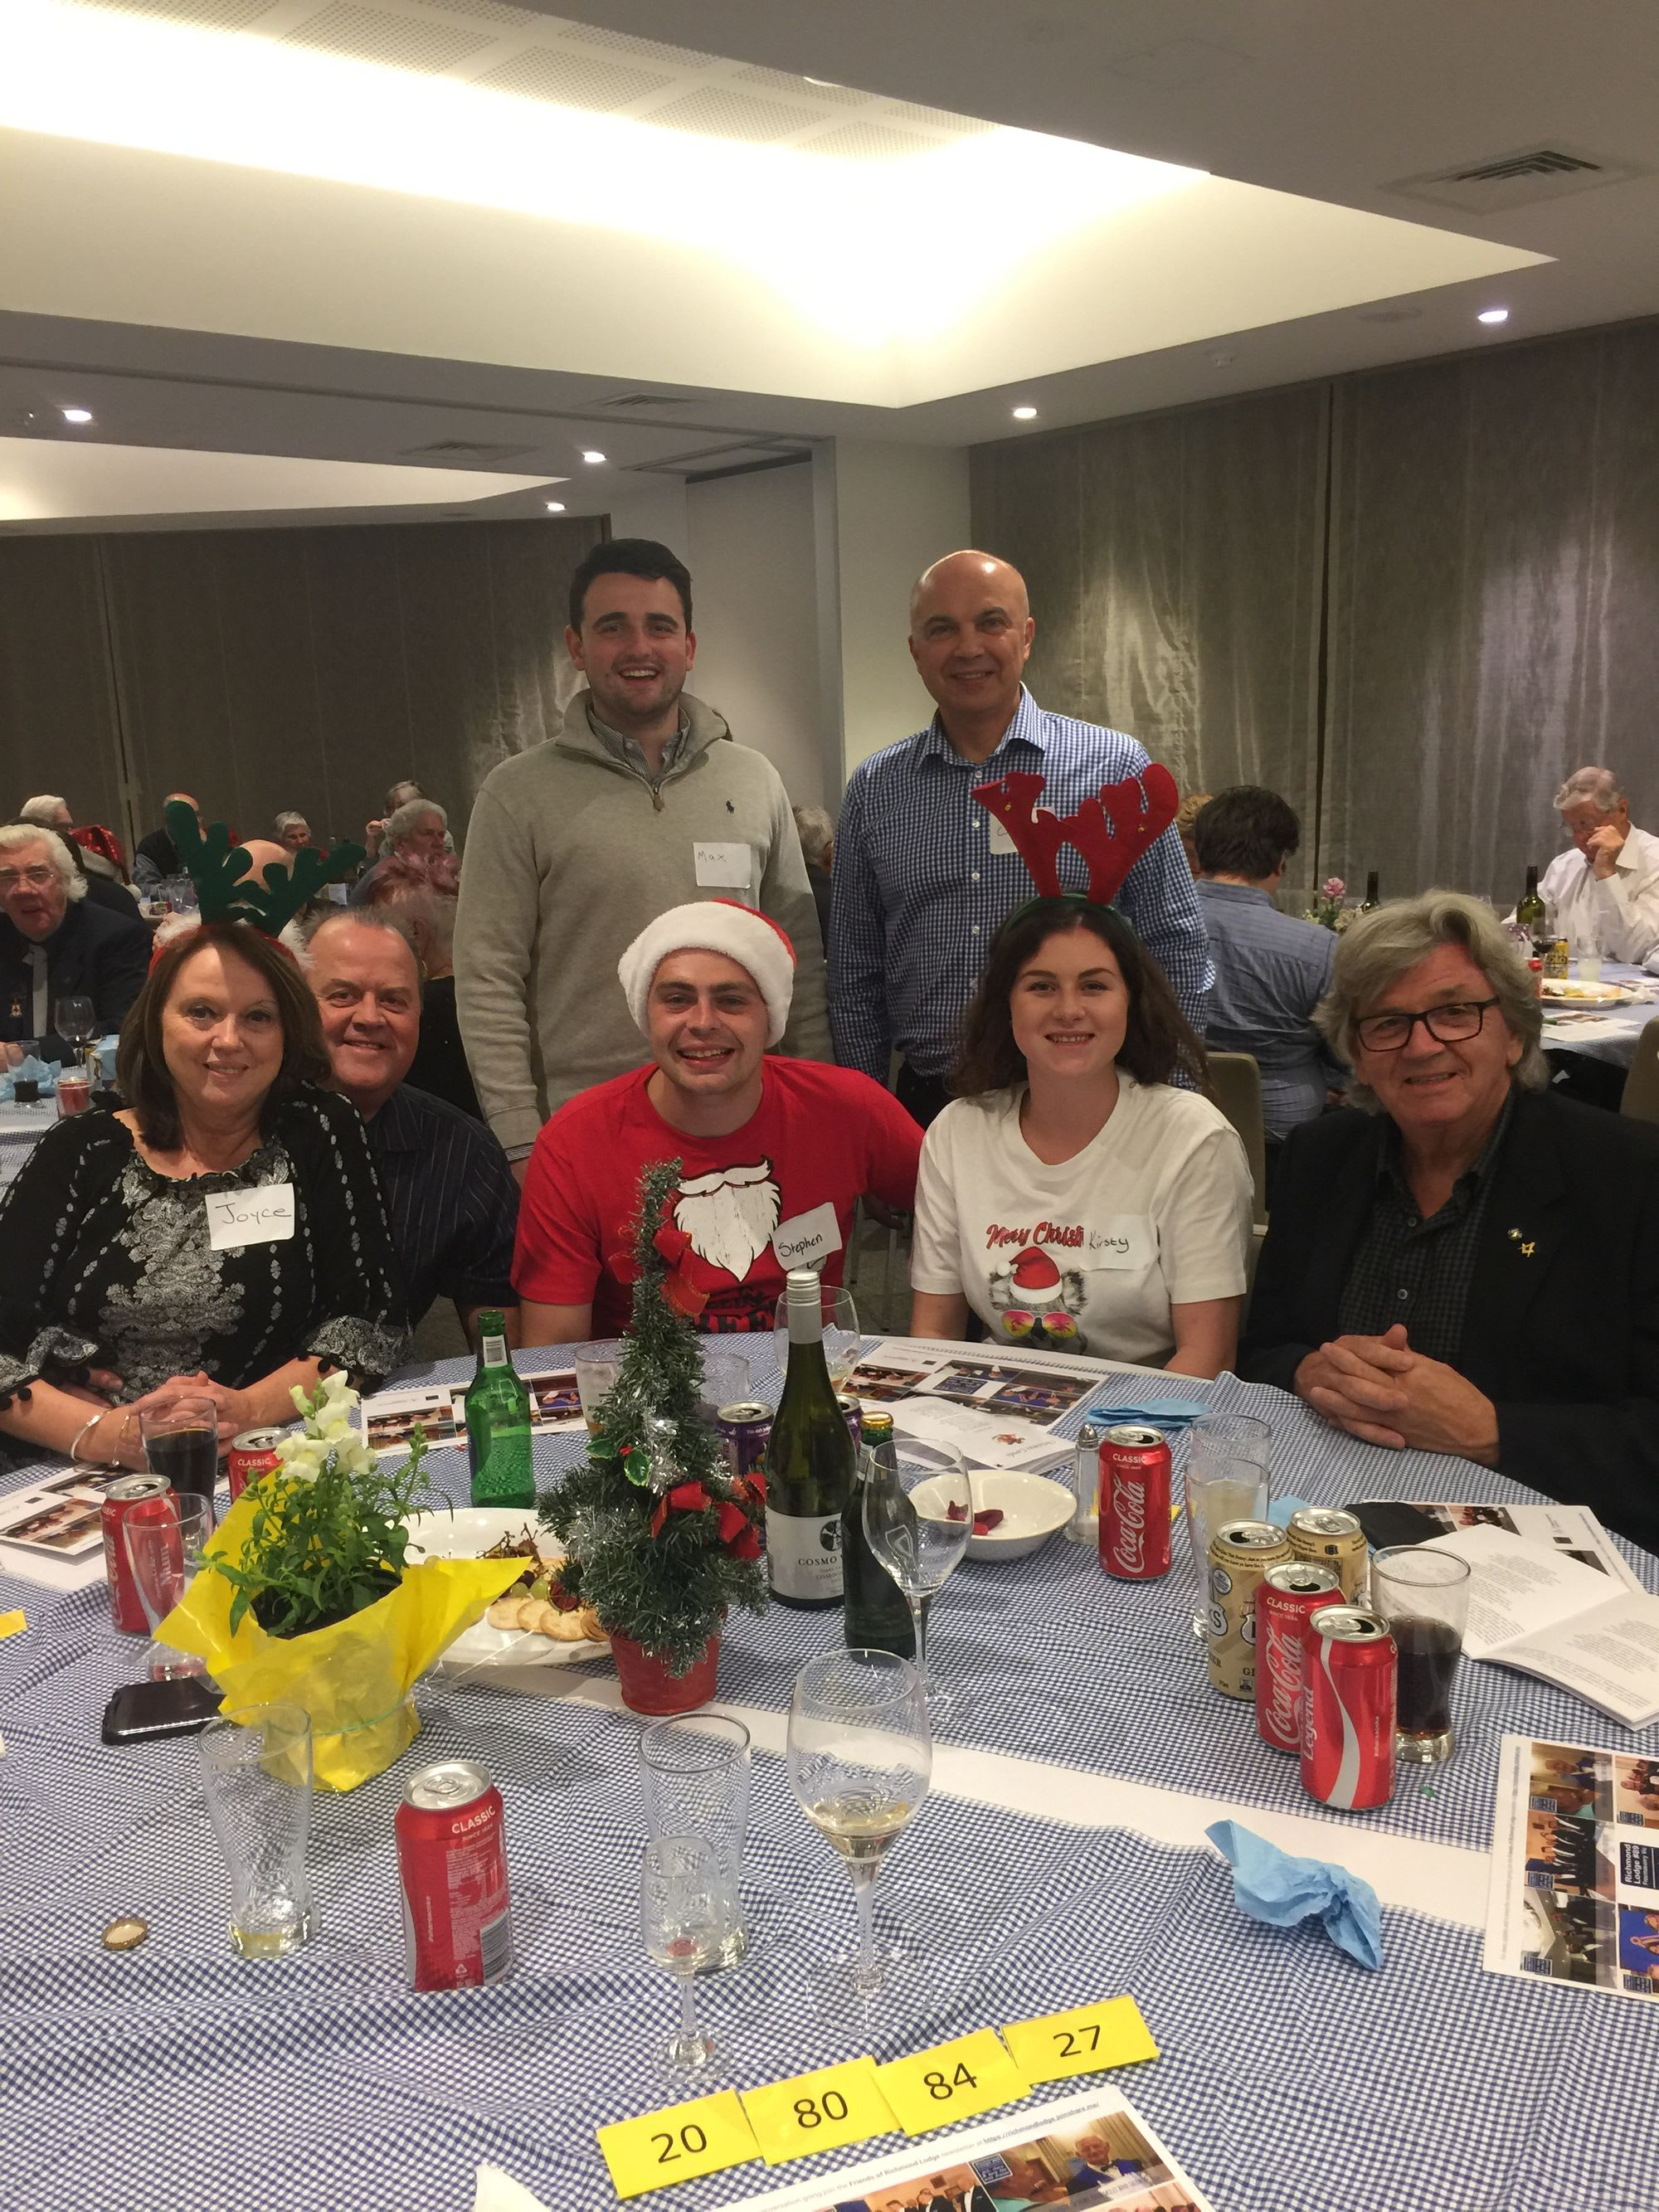 Well done everyone for awesome Richmond Lodge Freemasons Victoria 2019 party